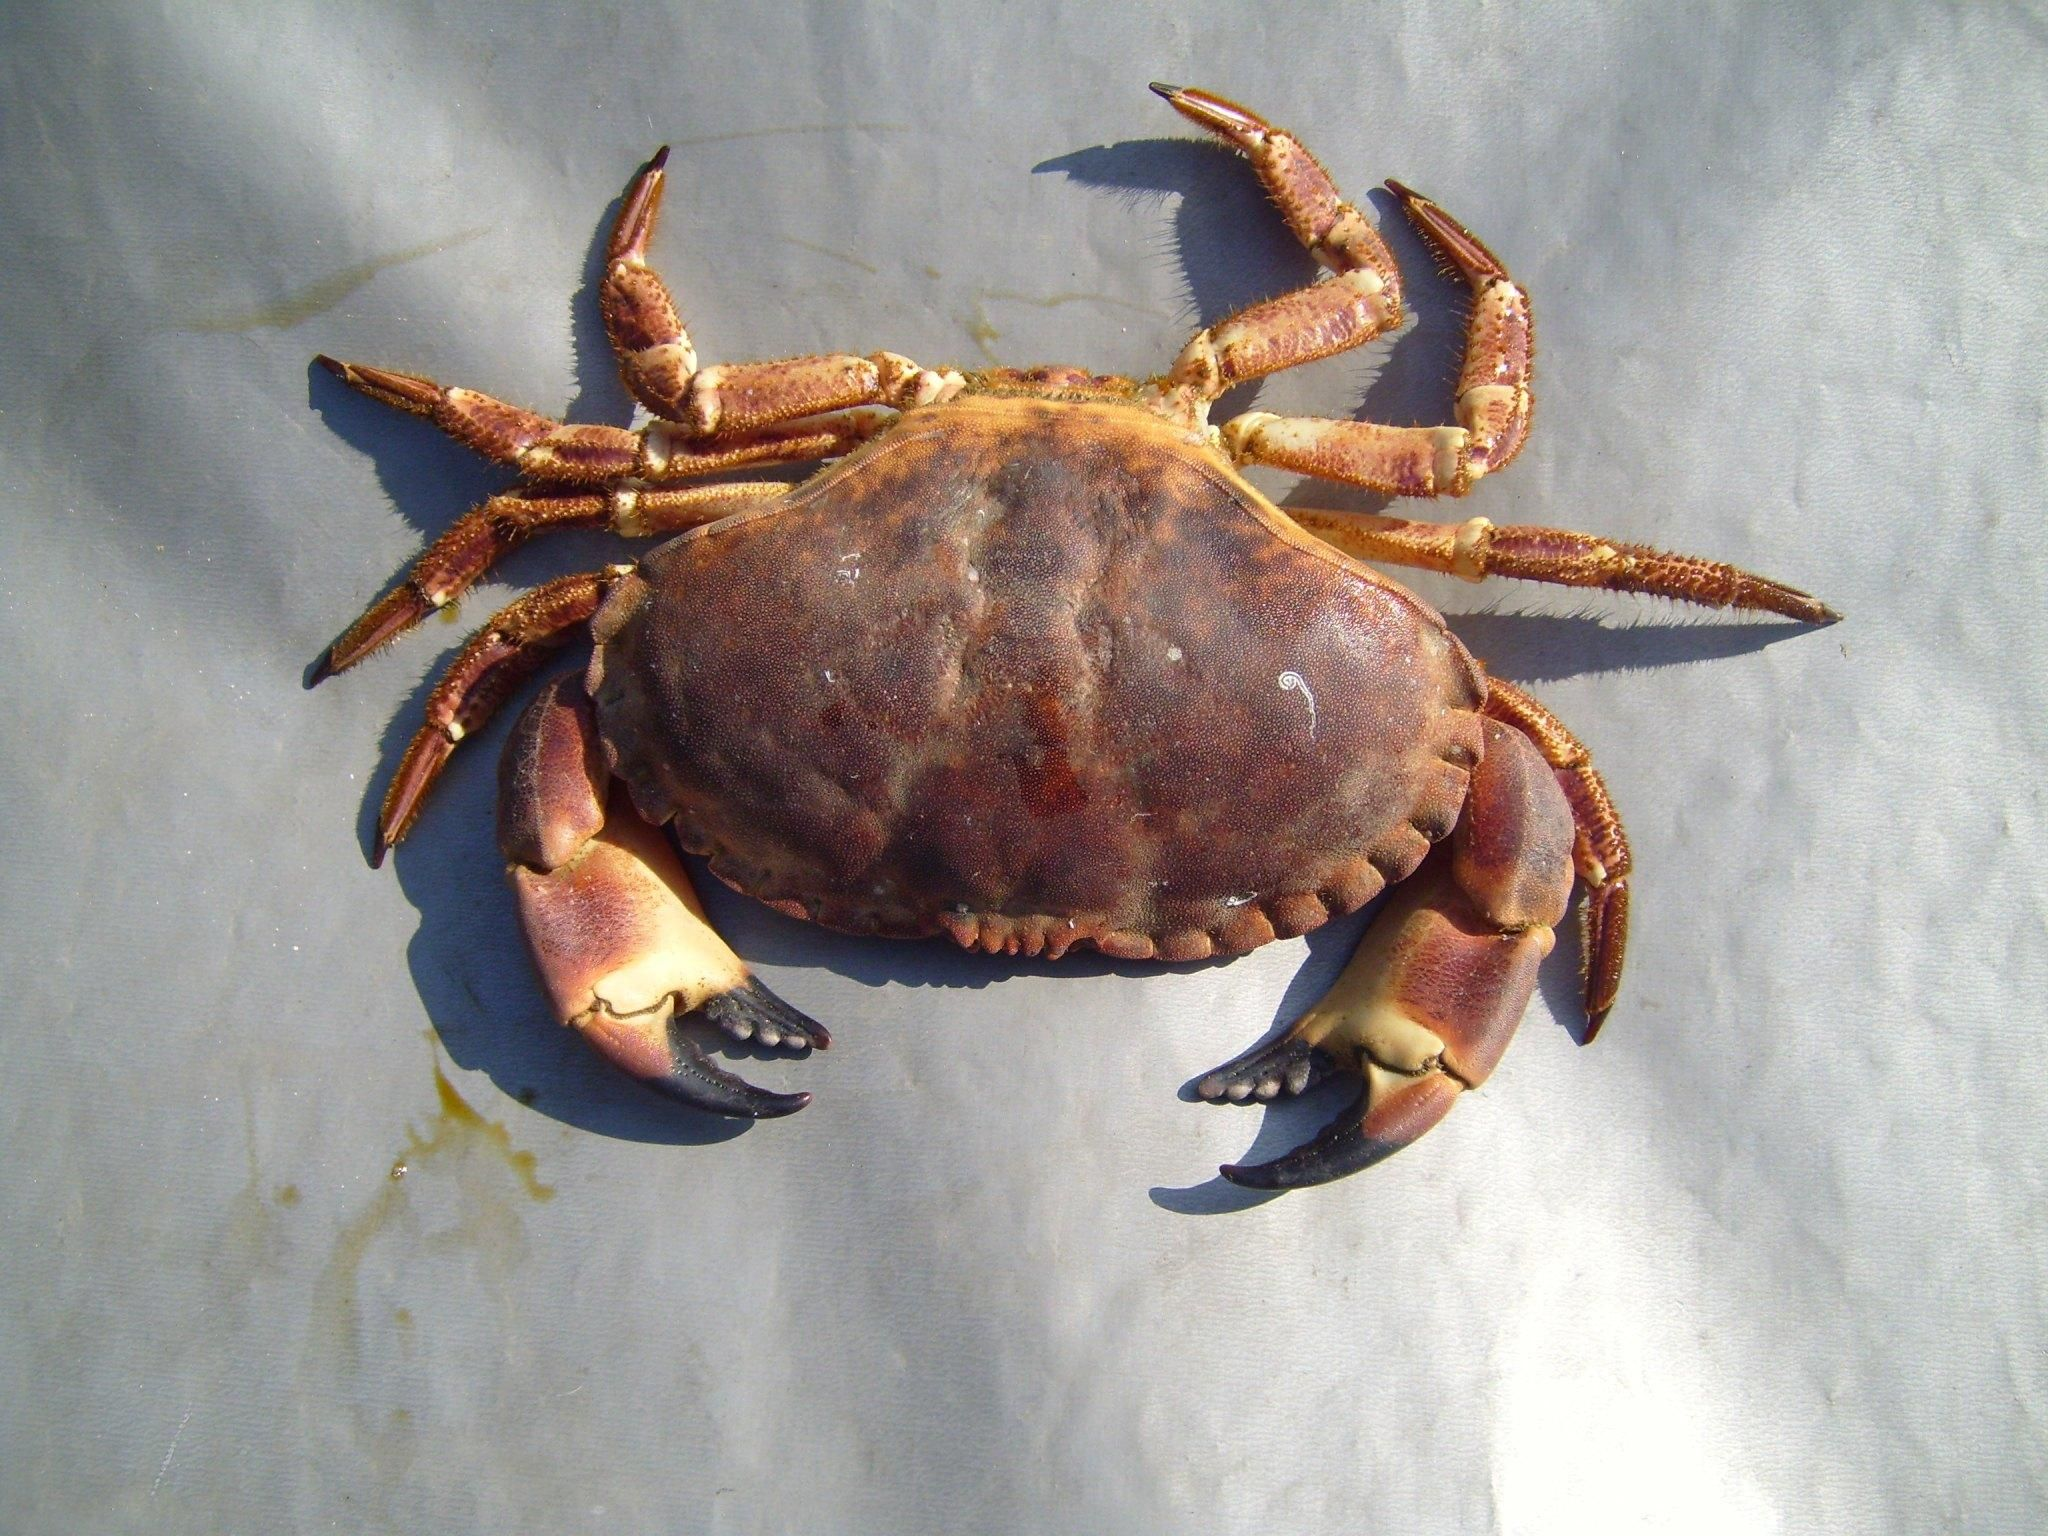 Free picture: arthropods, crab